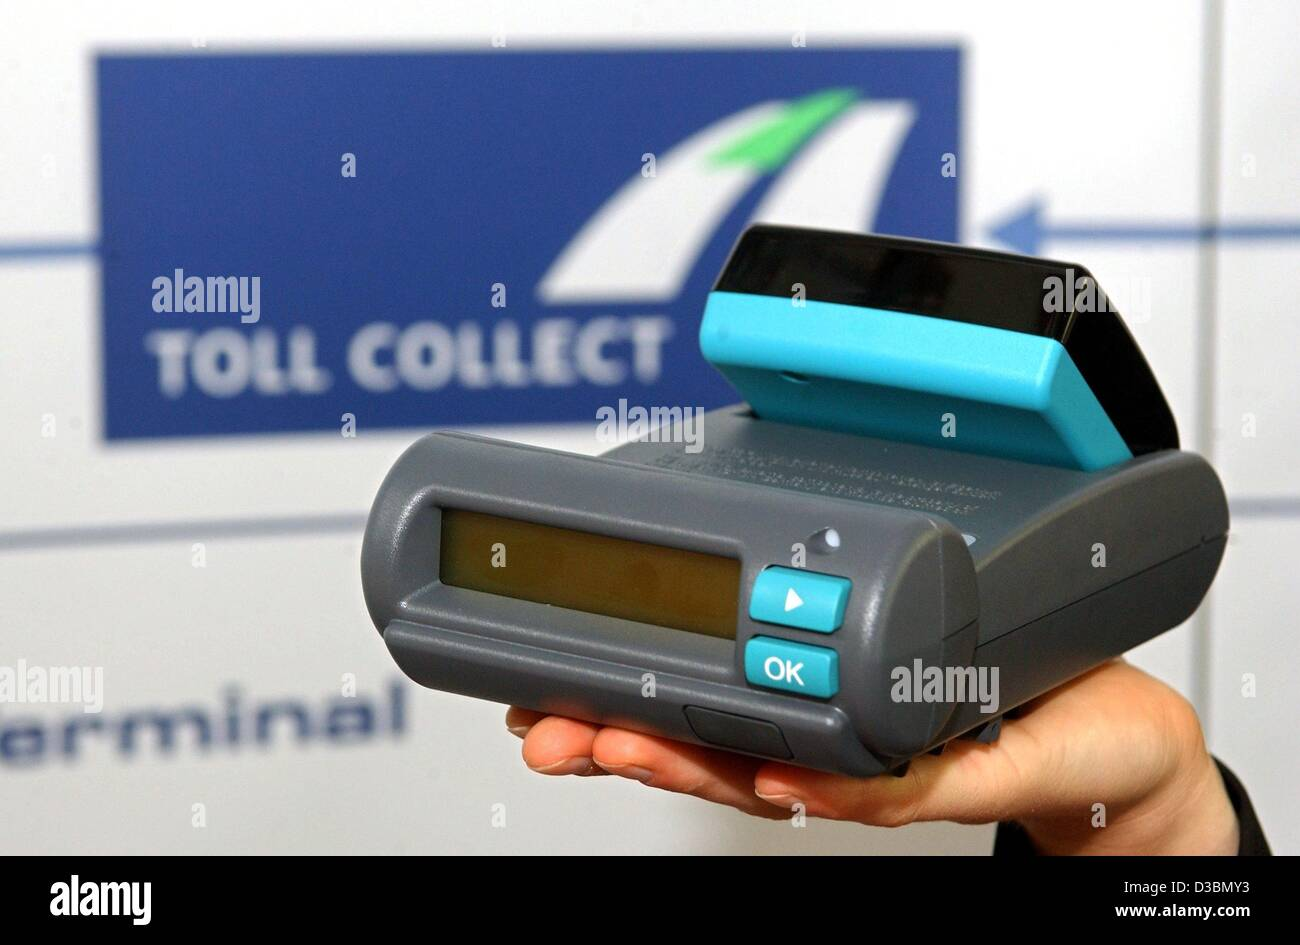 (dpa) - A device for the acquisition of data of the truck toll fees is seen in front of the logo of the comany Toll - Stock Image